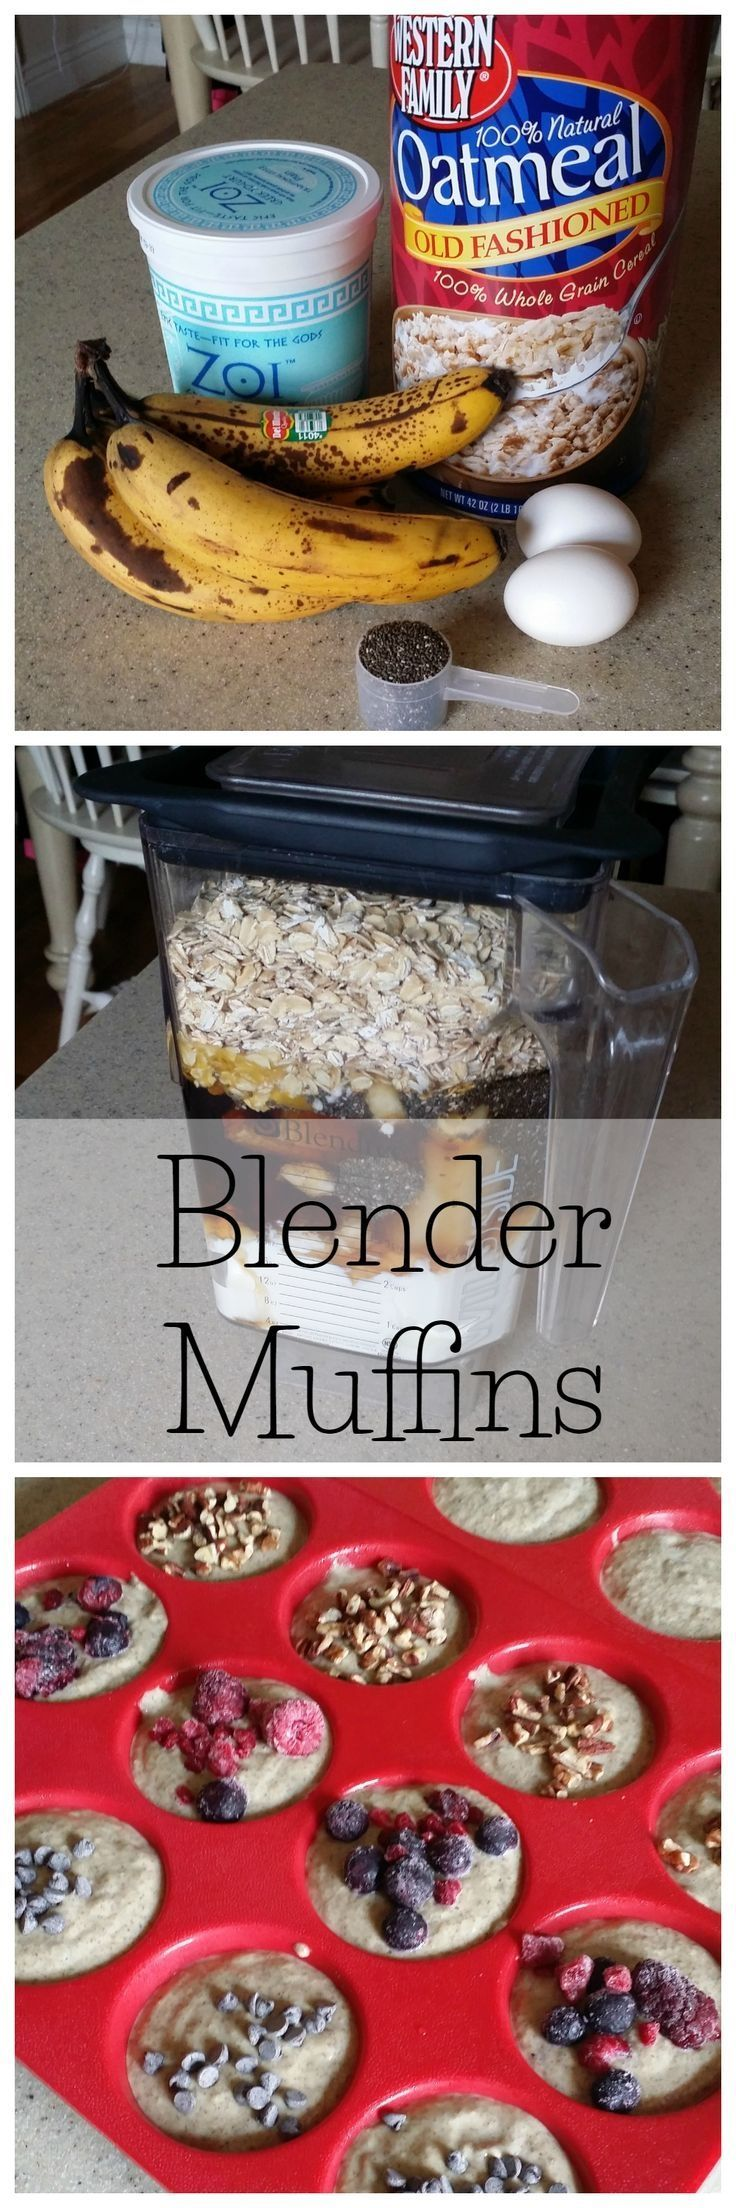 21 Day Fix approved Blender Muffins. Super easy recipe! #weightloss